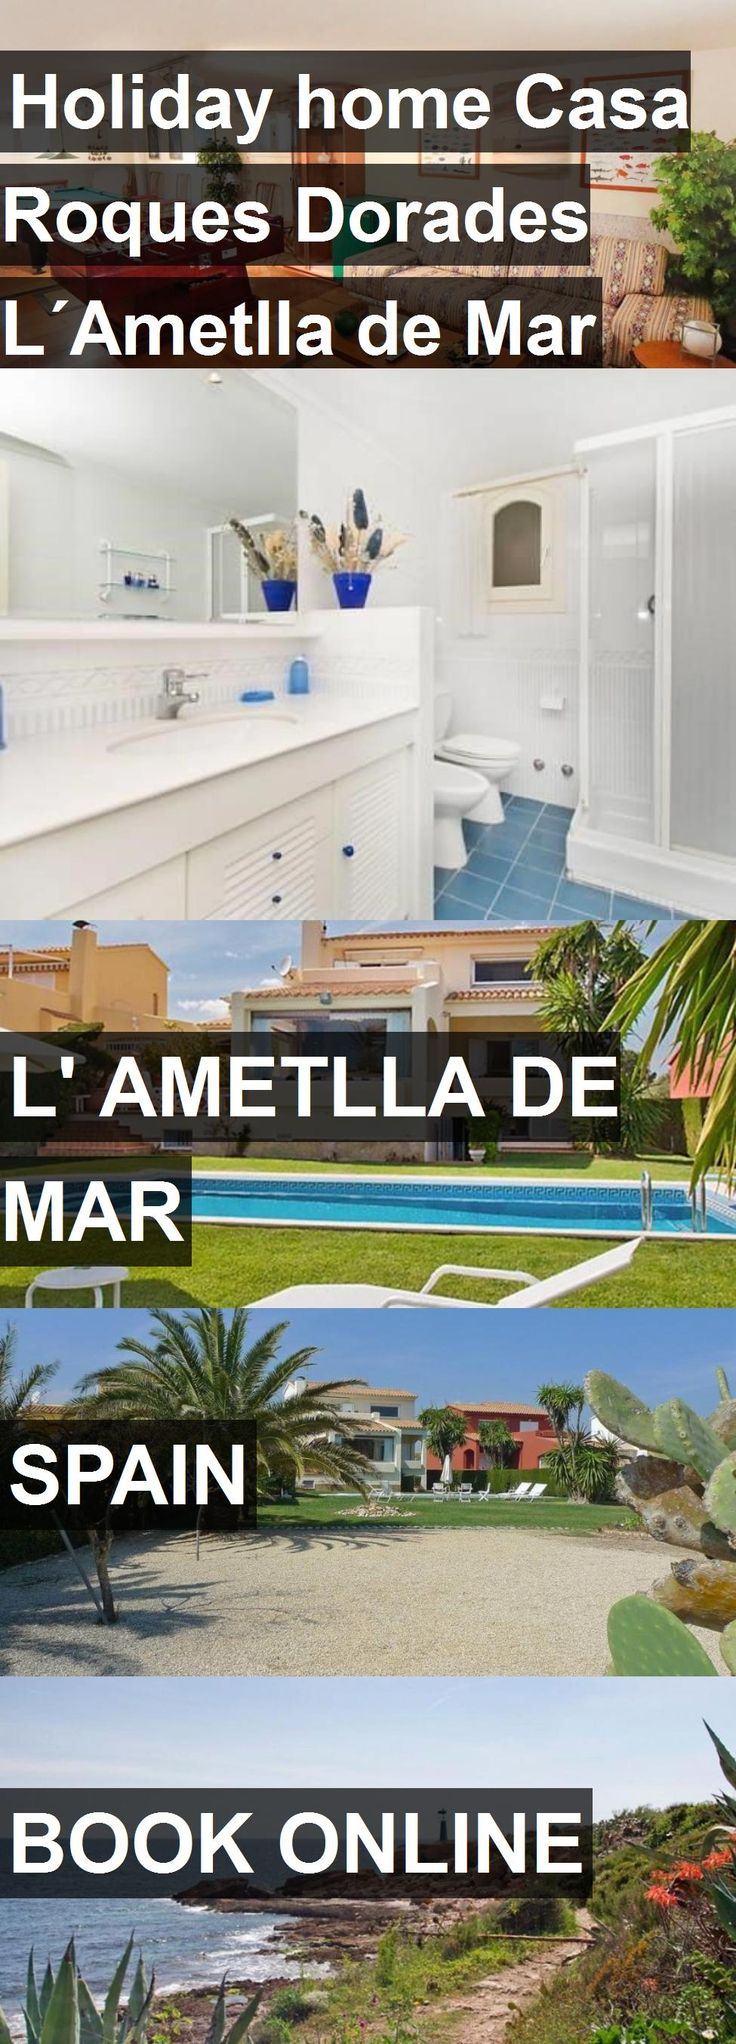 Hotel Holiday home Casa Roques Dorades L´Ametlla de Mar in l' Ametlla de Mar, Spain. For more information, photos, reviews and best prices please follow the link. #Spain #l'AmetlladeMar #travel #vacation #hotel